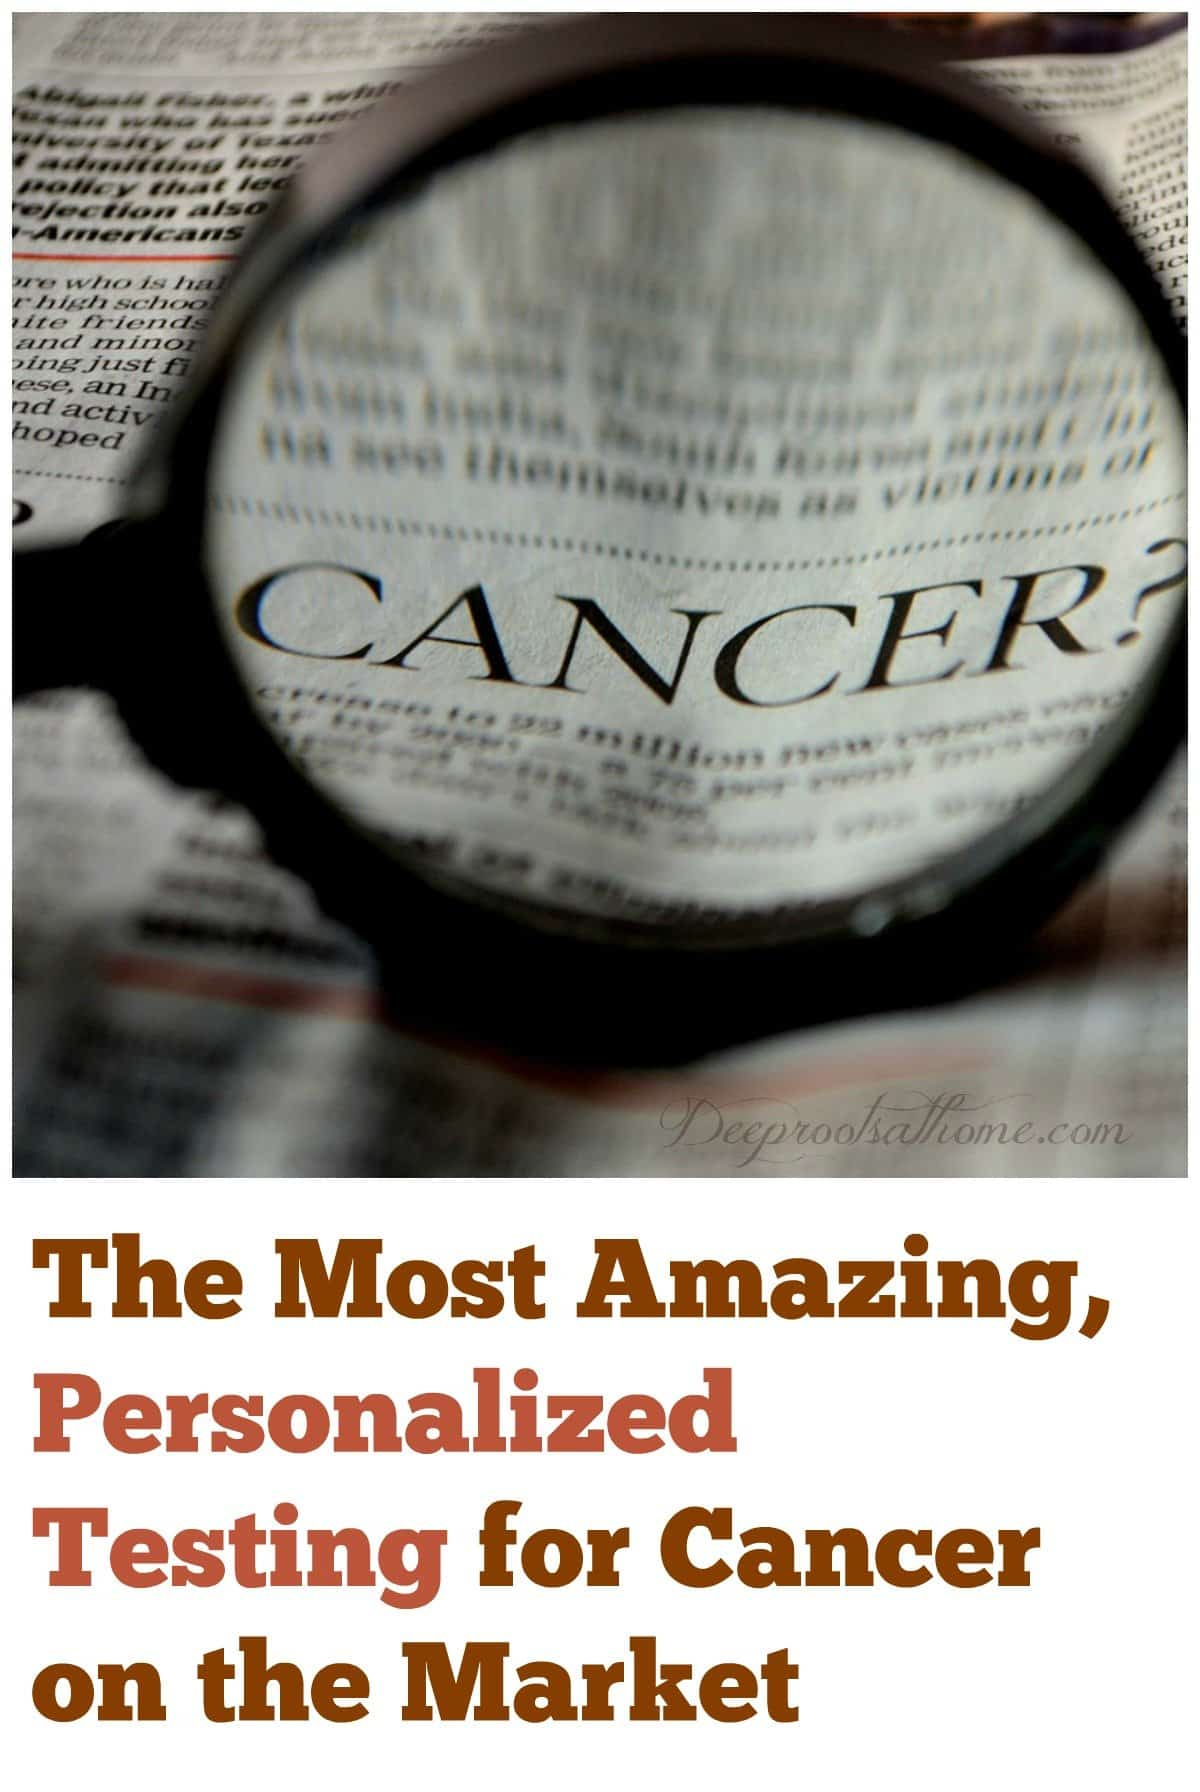 The Most Amazing, Personalized Testing for Cancer on the Market. newspaper